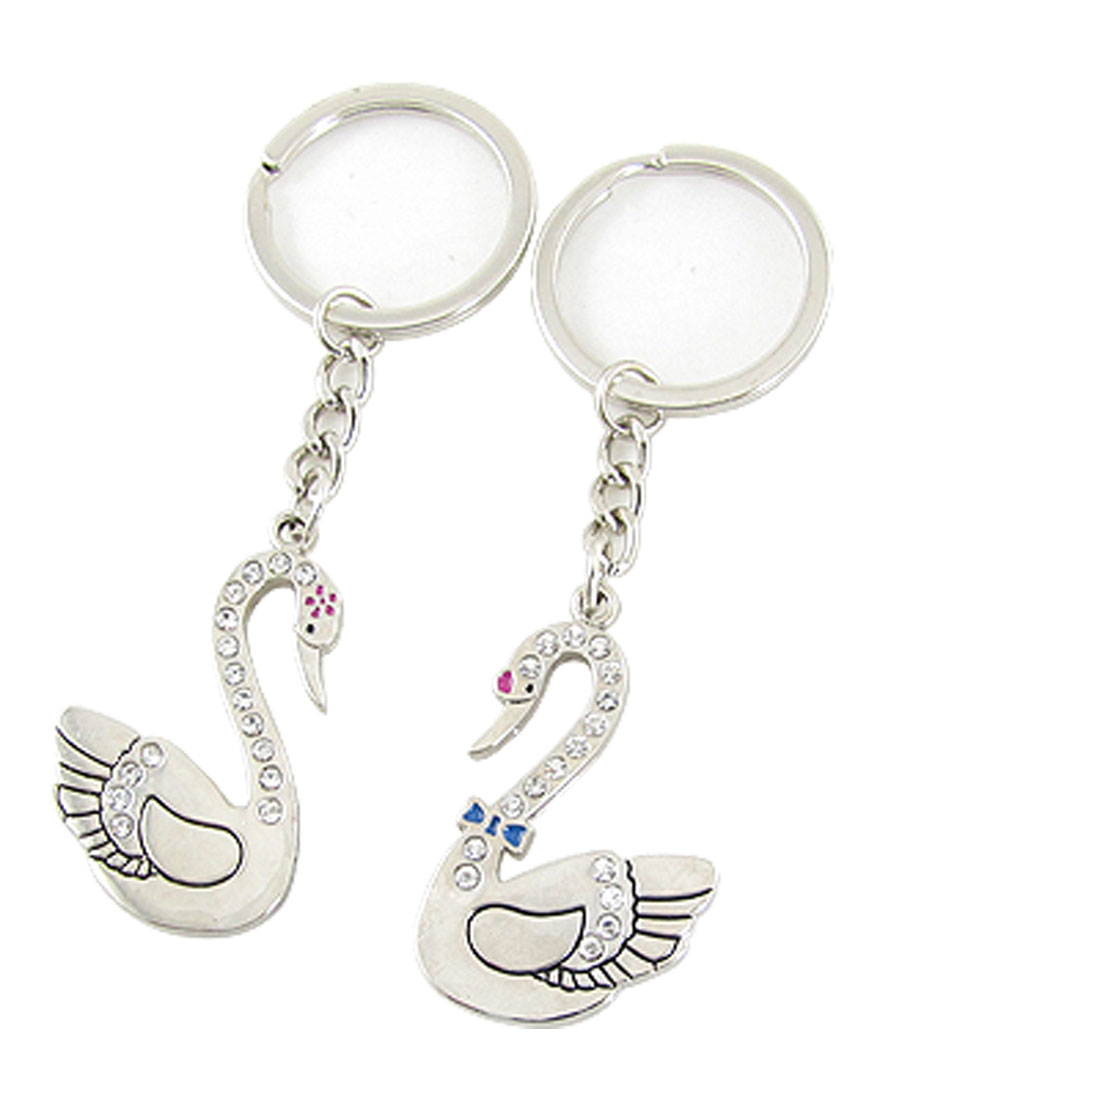 Rhinestone Swan Pendant Pair Lovers' Keychain Key Ring